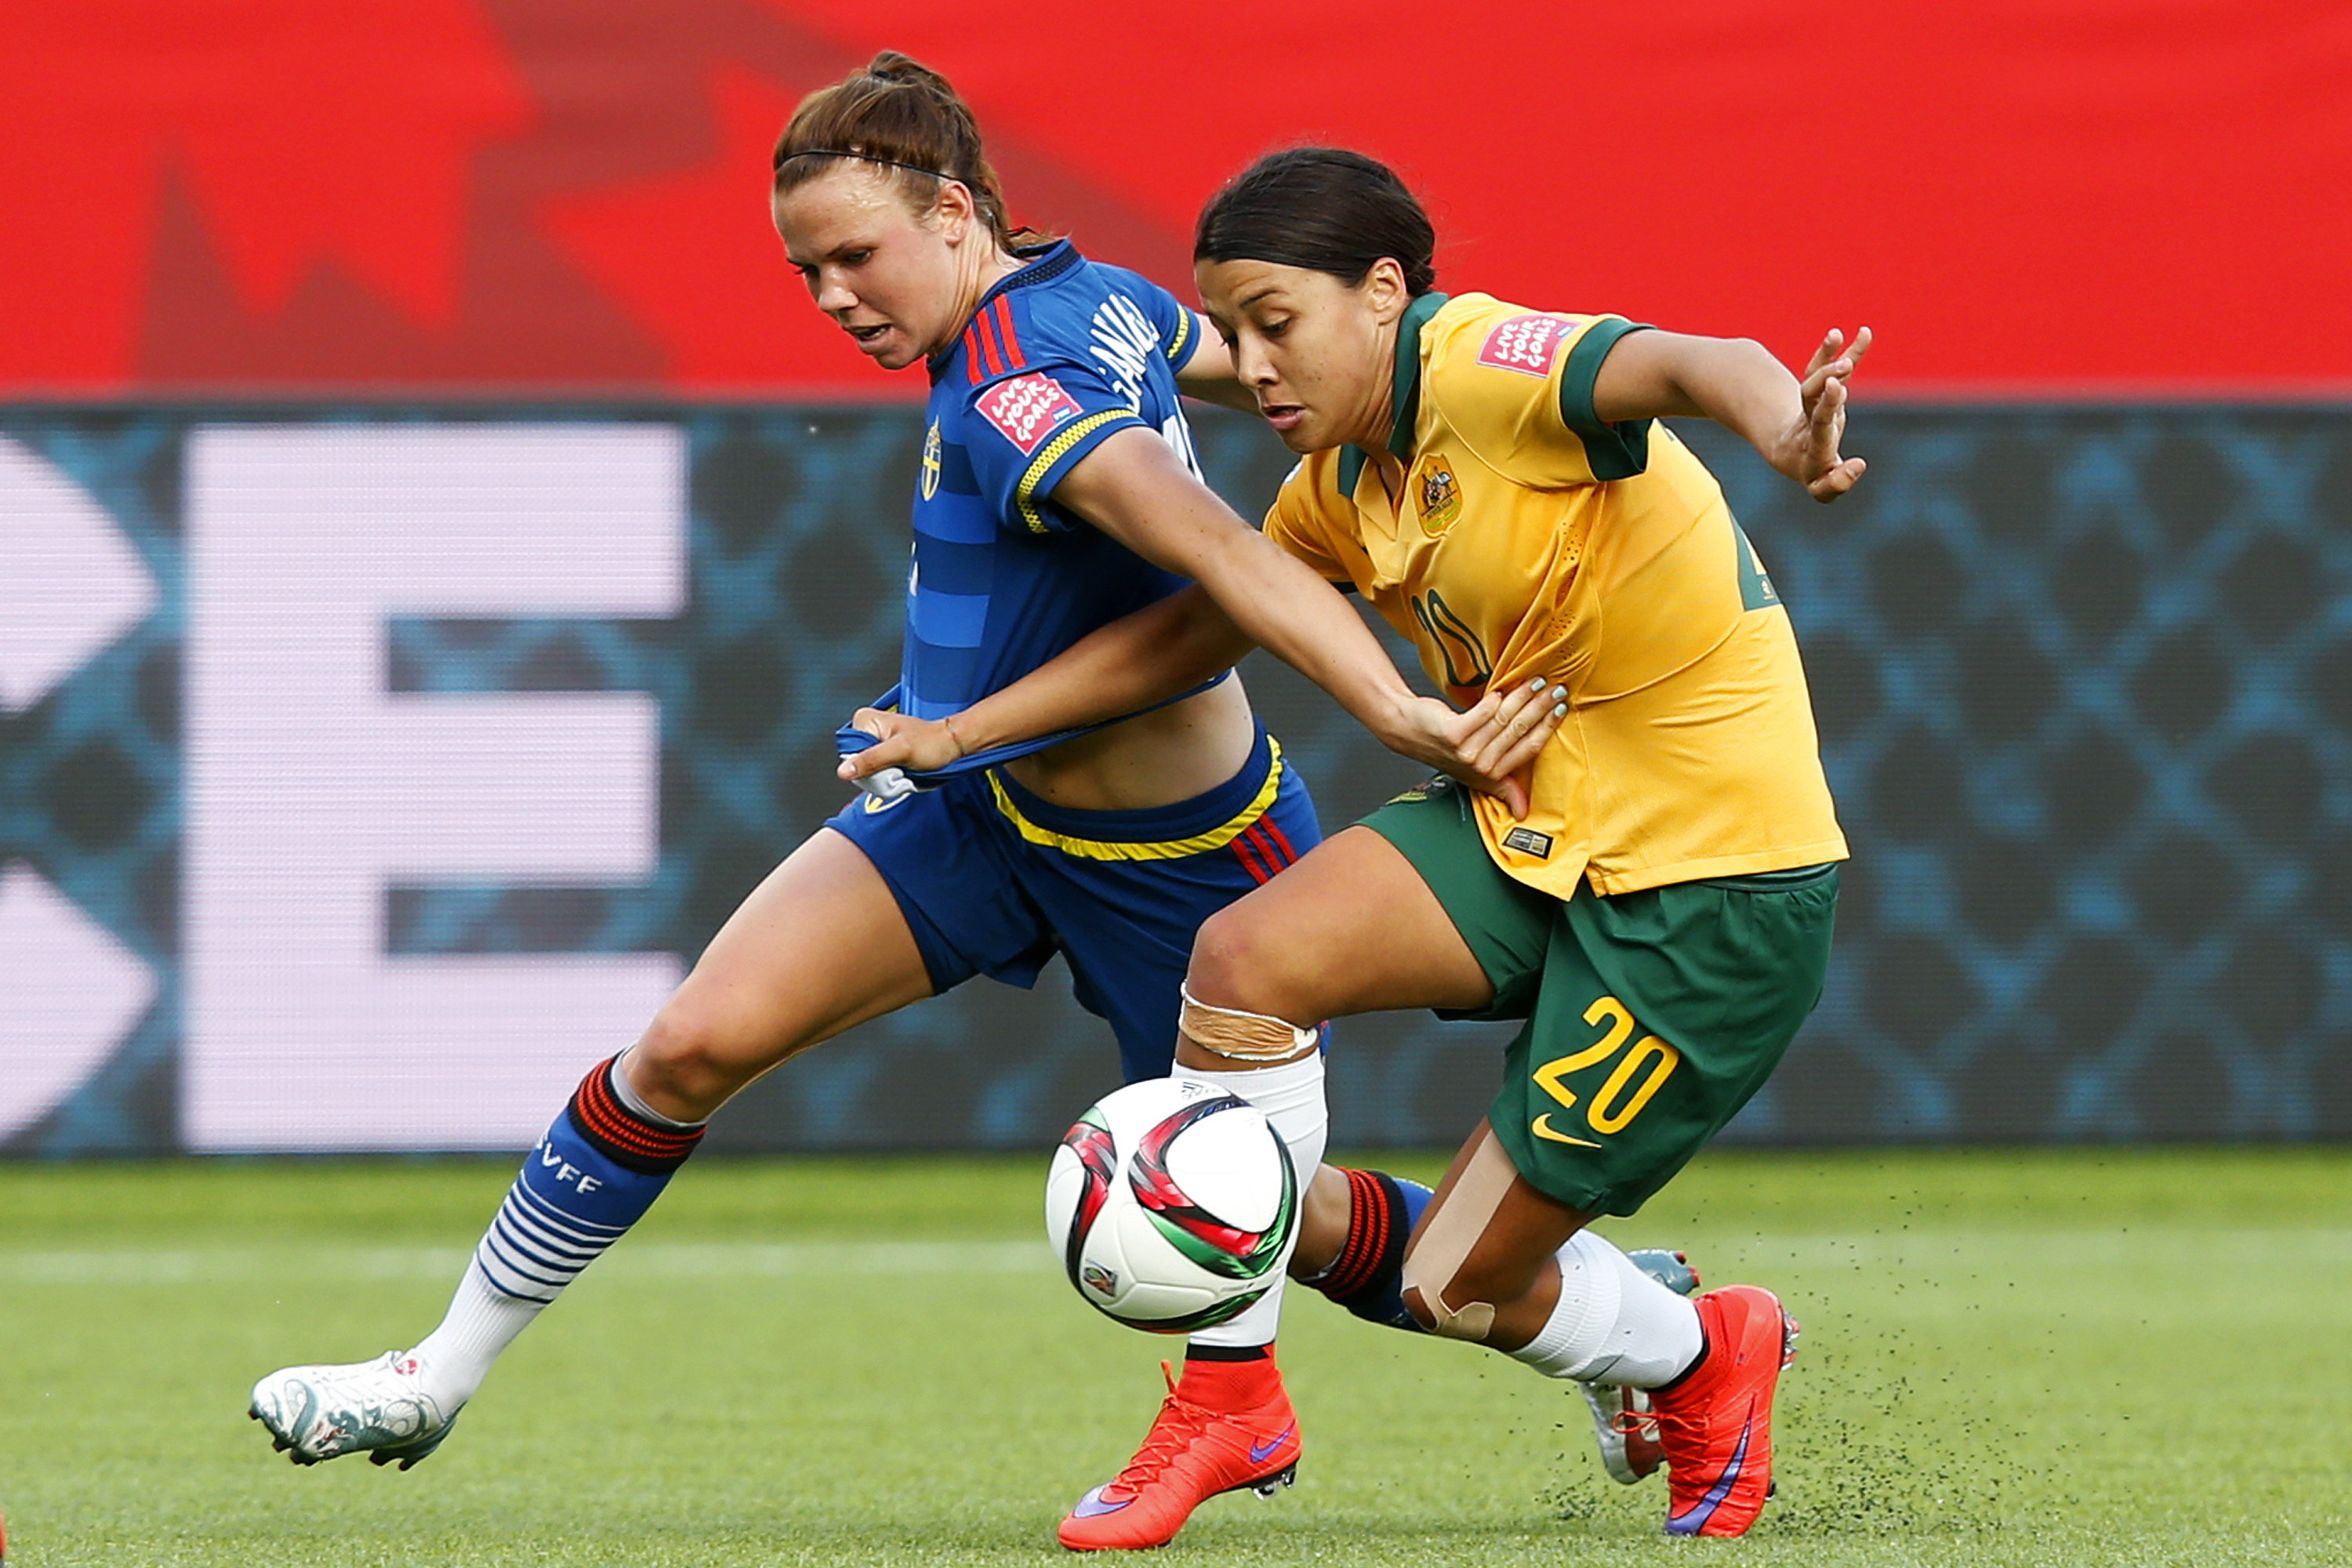 Sam Kerr battles for the ball against a Swedish opponent at the 2015 FIFA Women's World Cup